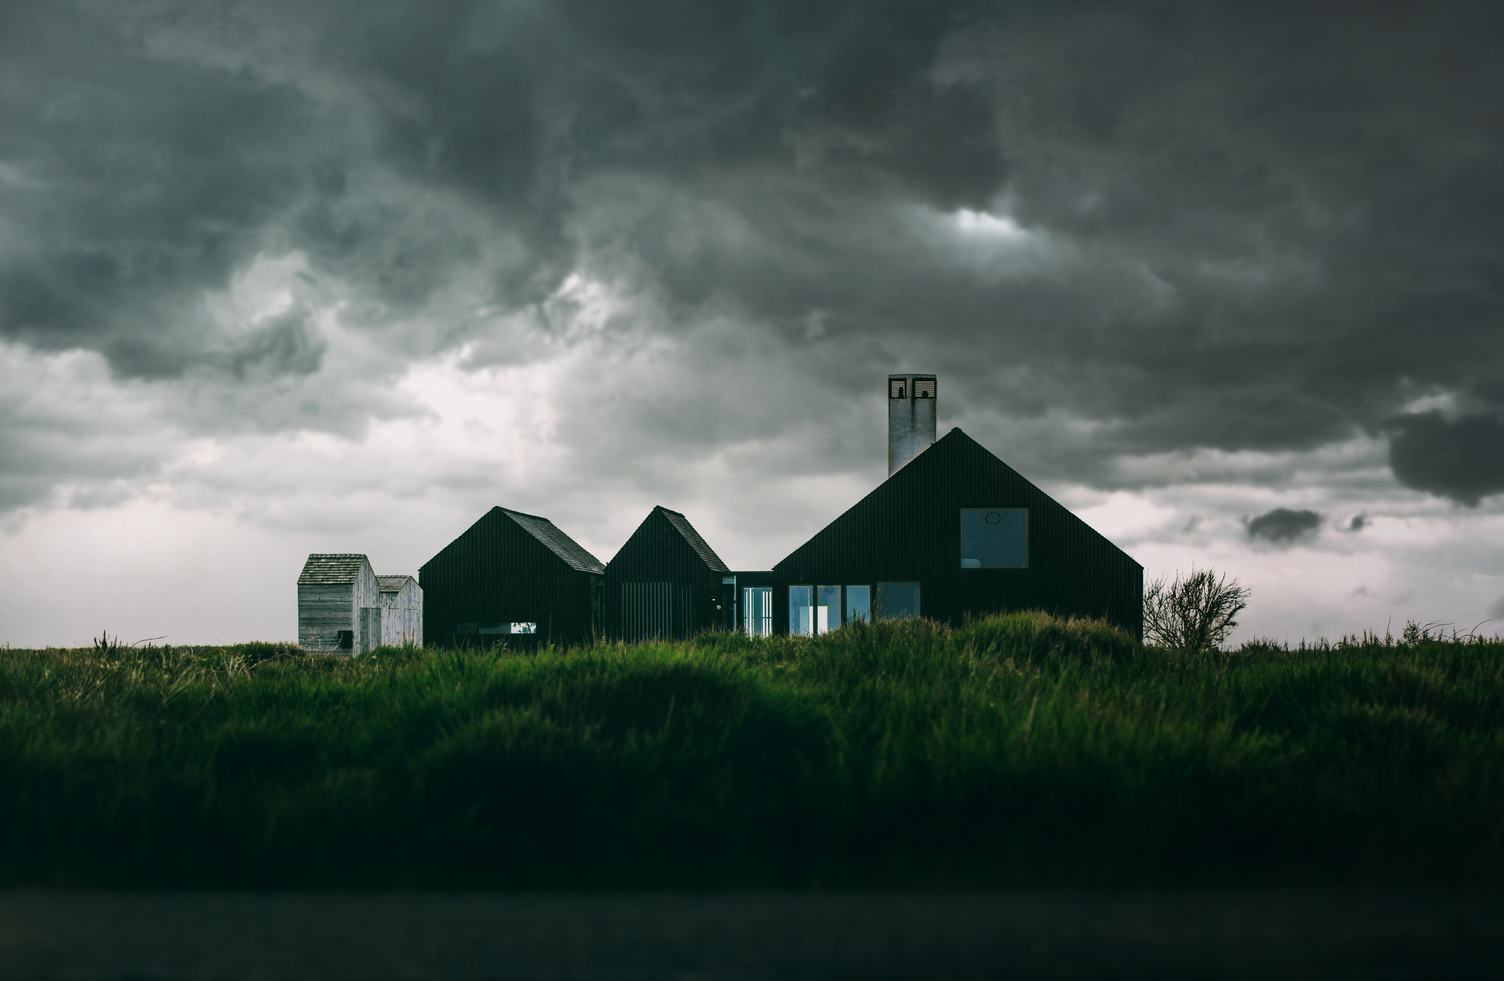 Modern House on the Green Land and Dramatic Clouds